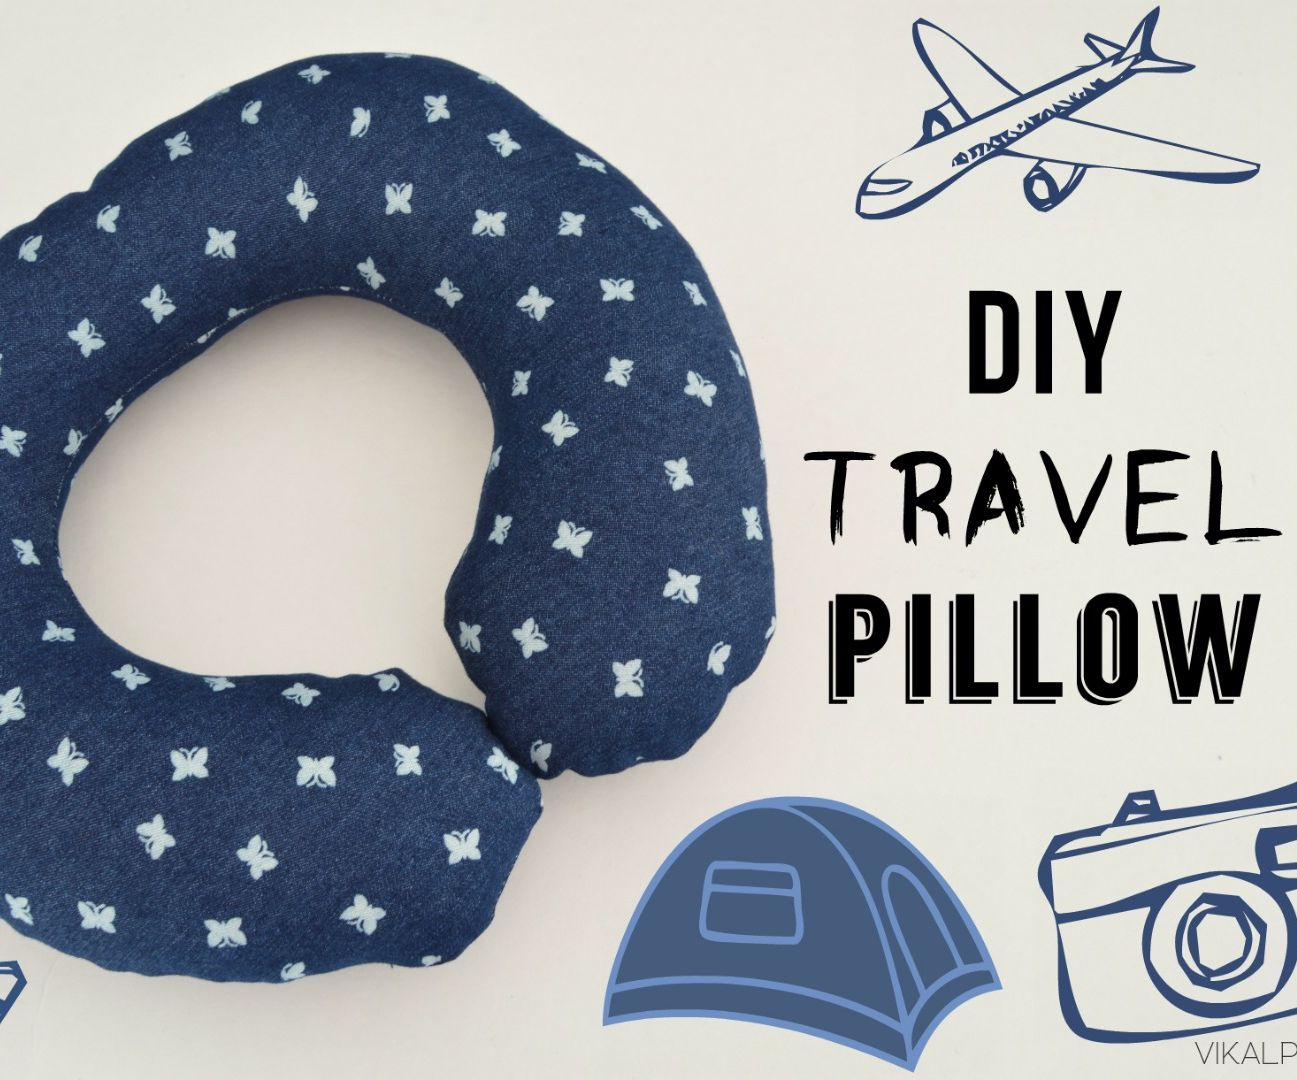 How to Sew a Travel Pillow: 6 Steps (with Pictures)